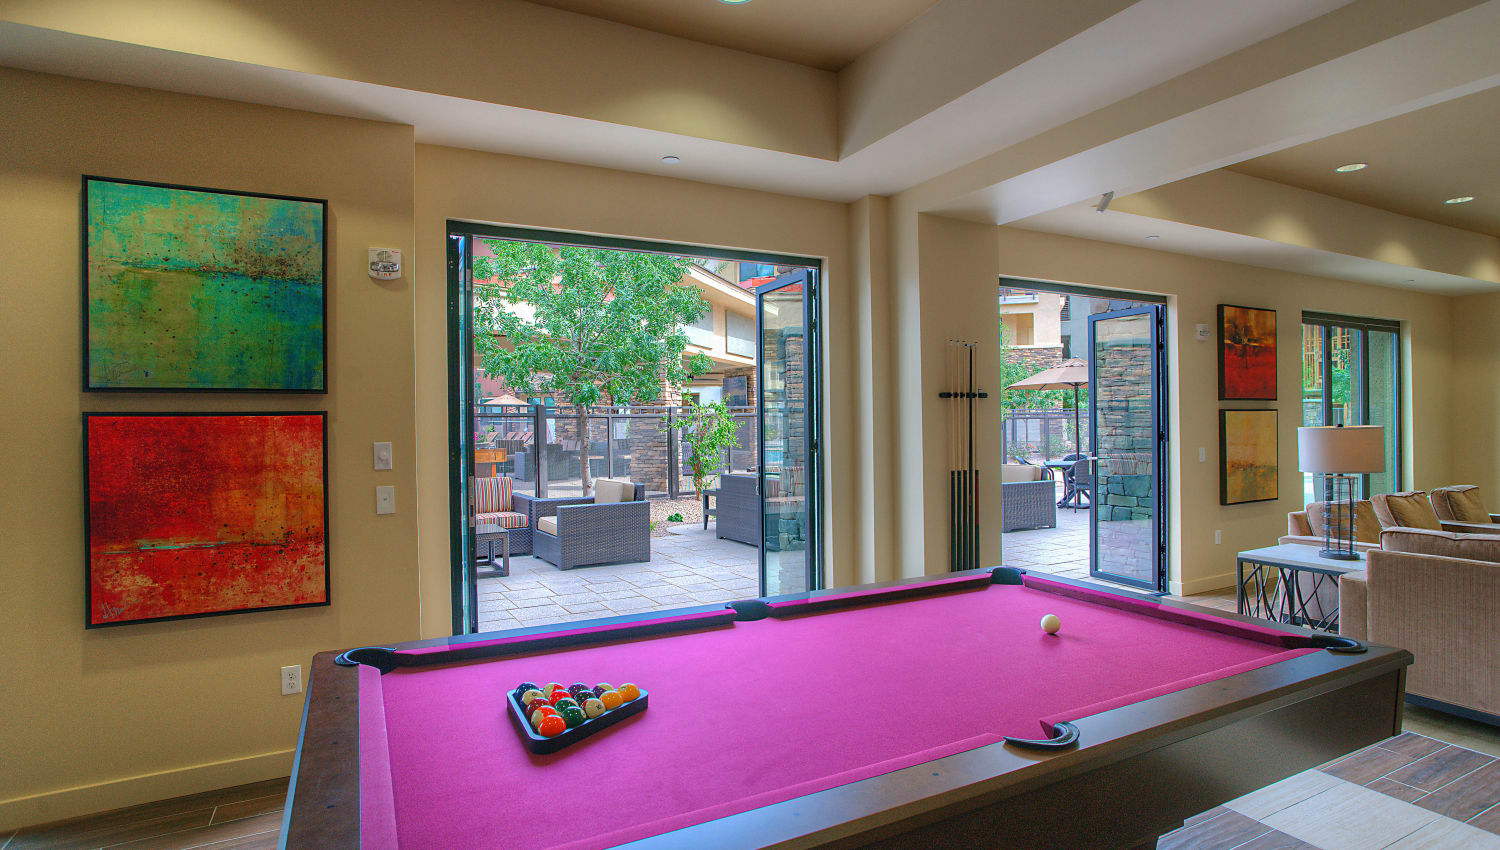 Billiards and more in the game room at Vistara at SanTan Village in Gilbert, Arizona